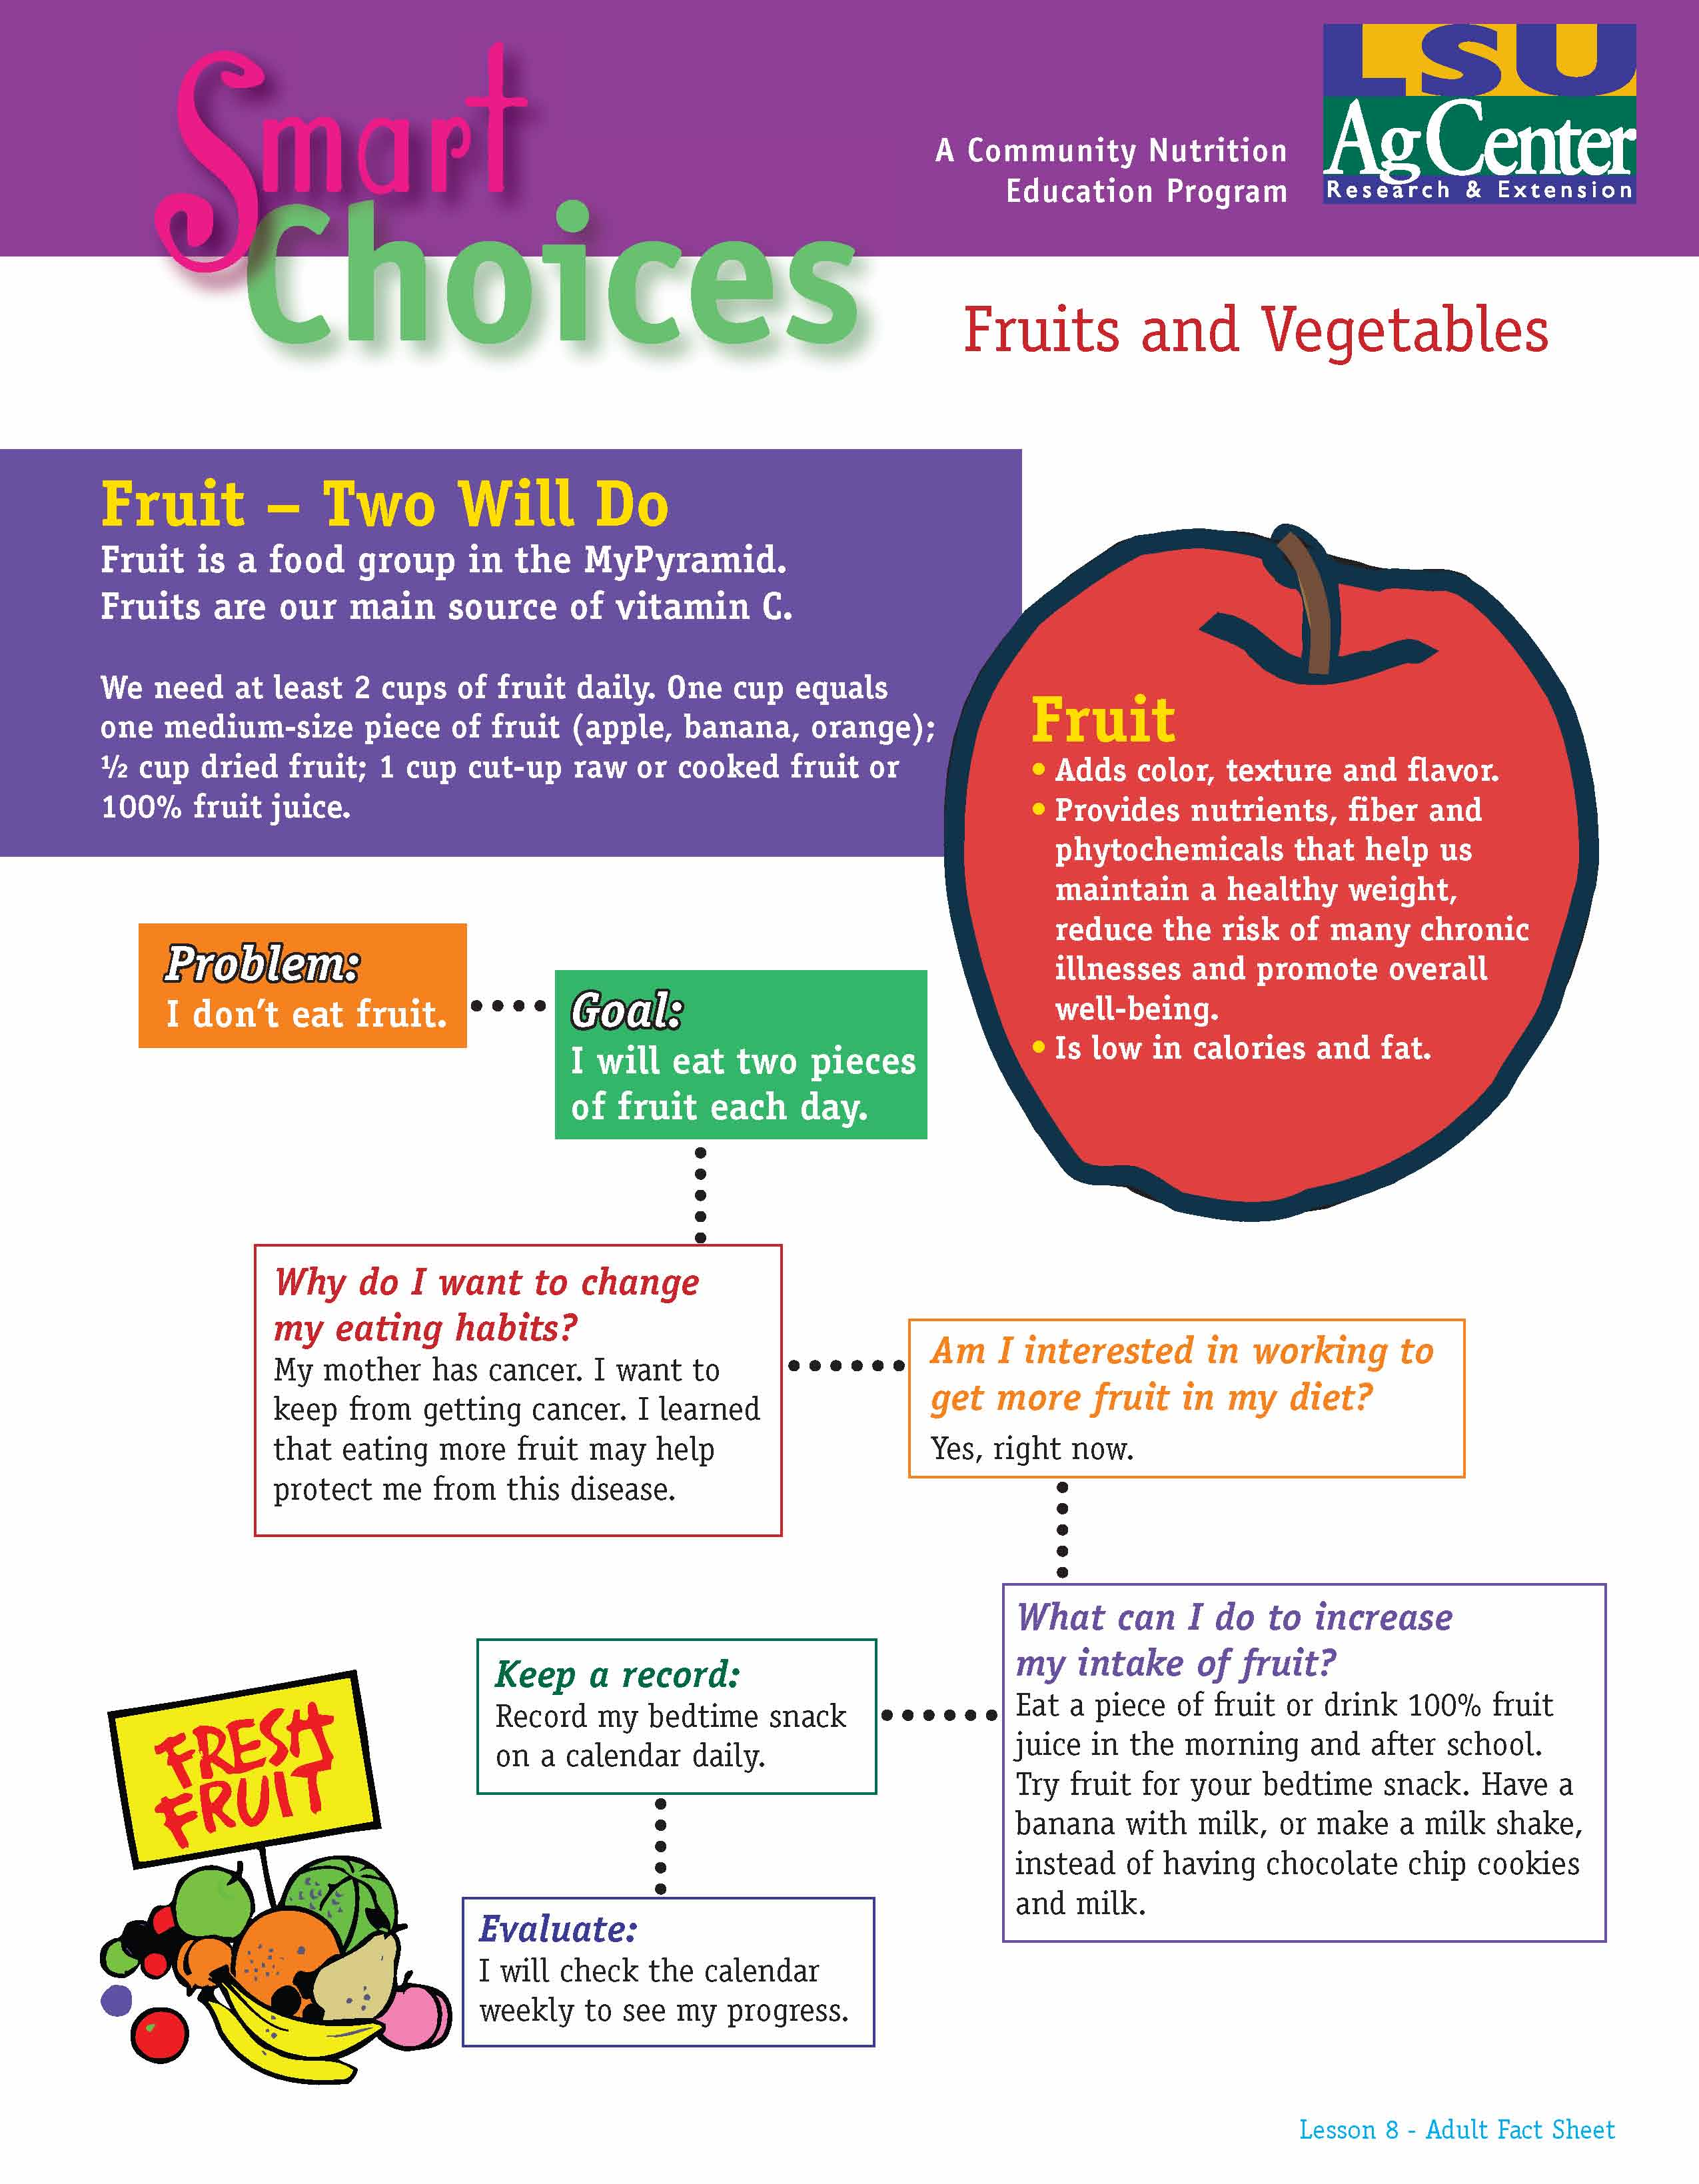 Smart Choices:  Fruit - Two Will Do